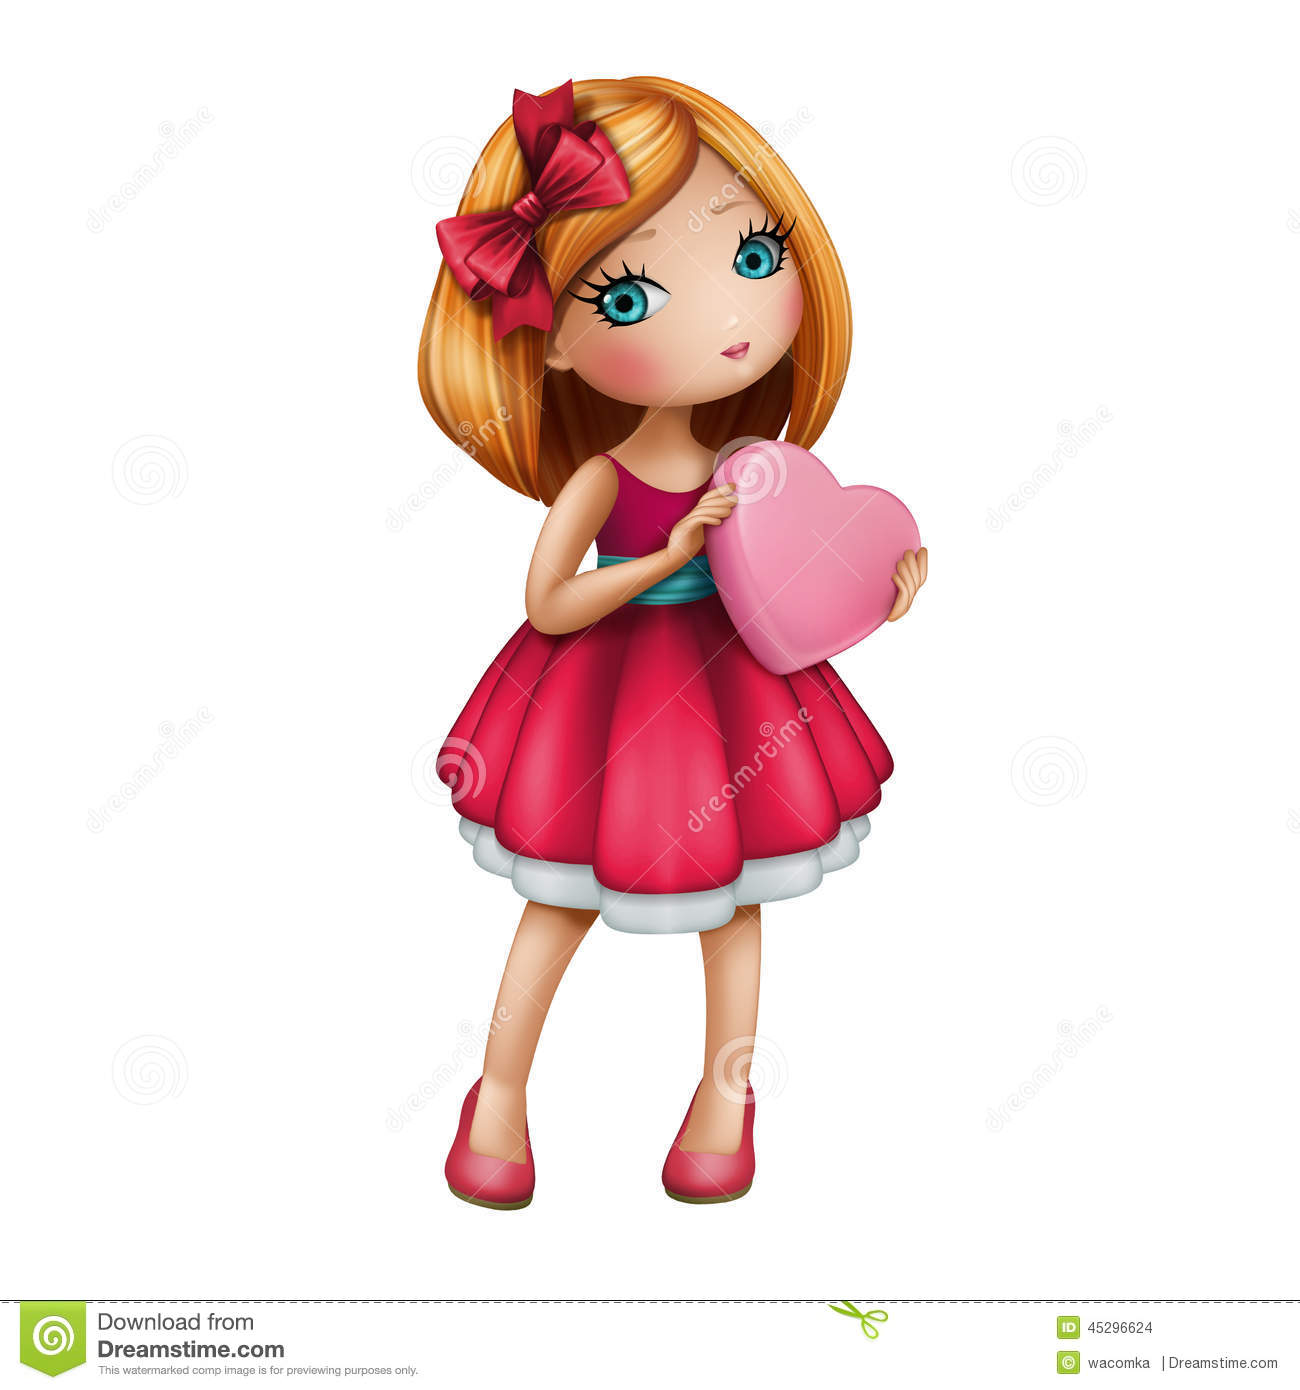 Red Dress clipart cartoon person Cute isolated us girl heart